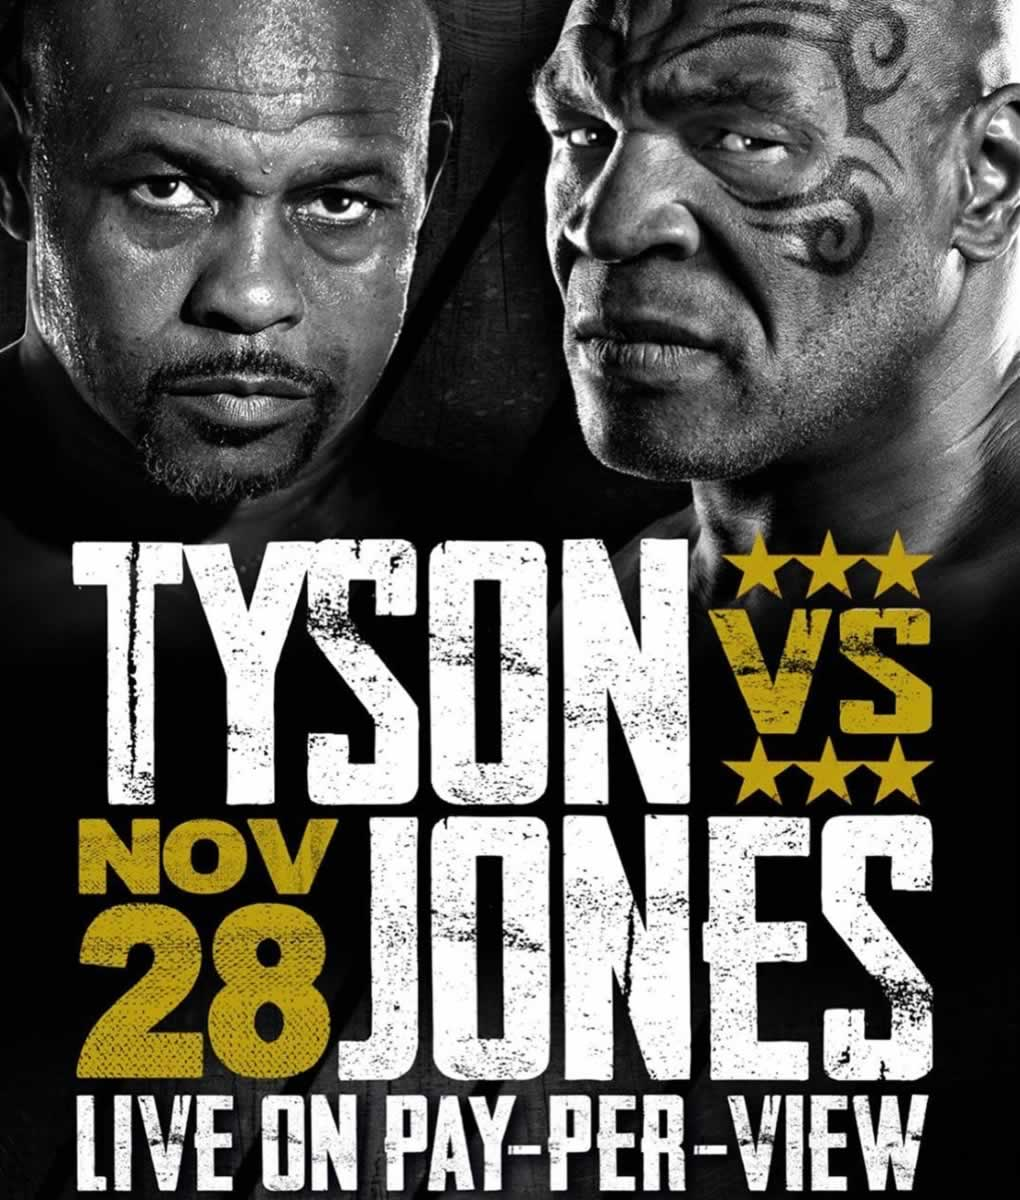 mike tyson confirms roy jones jr fight date change winner gets belt undercard bouts added fightmag mike tyson confirms roy jones jr fight